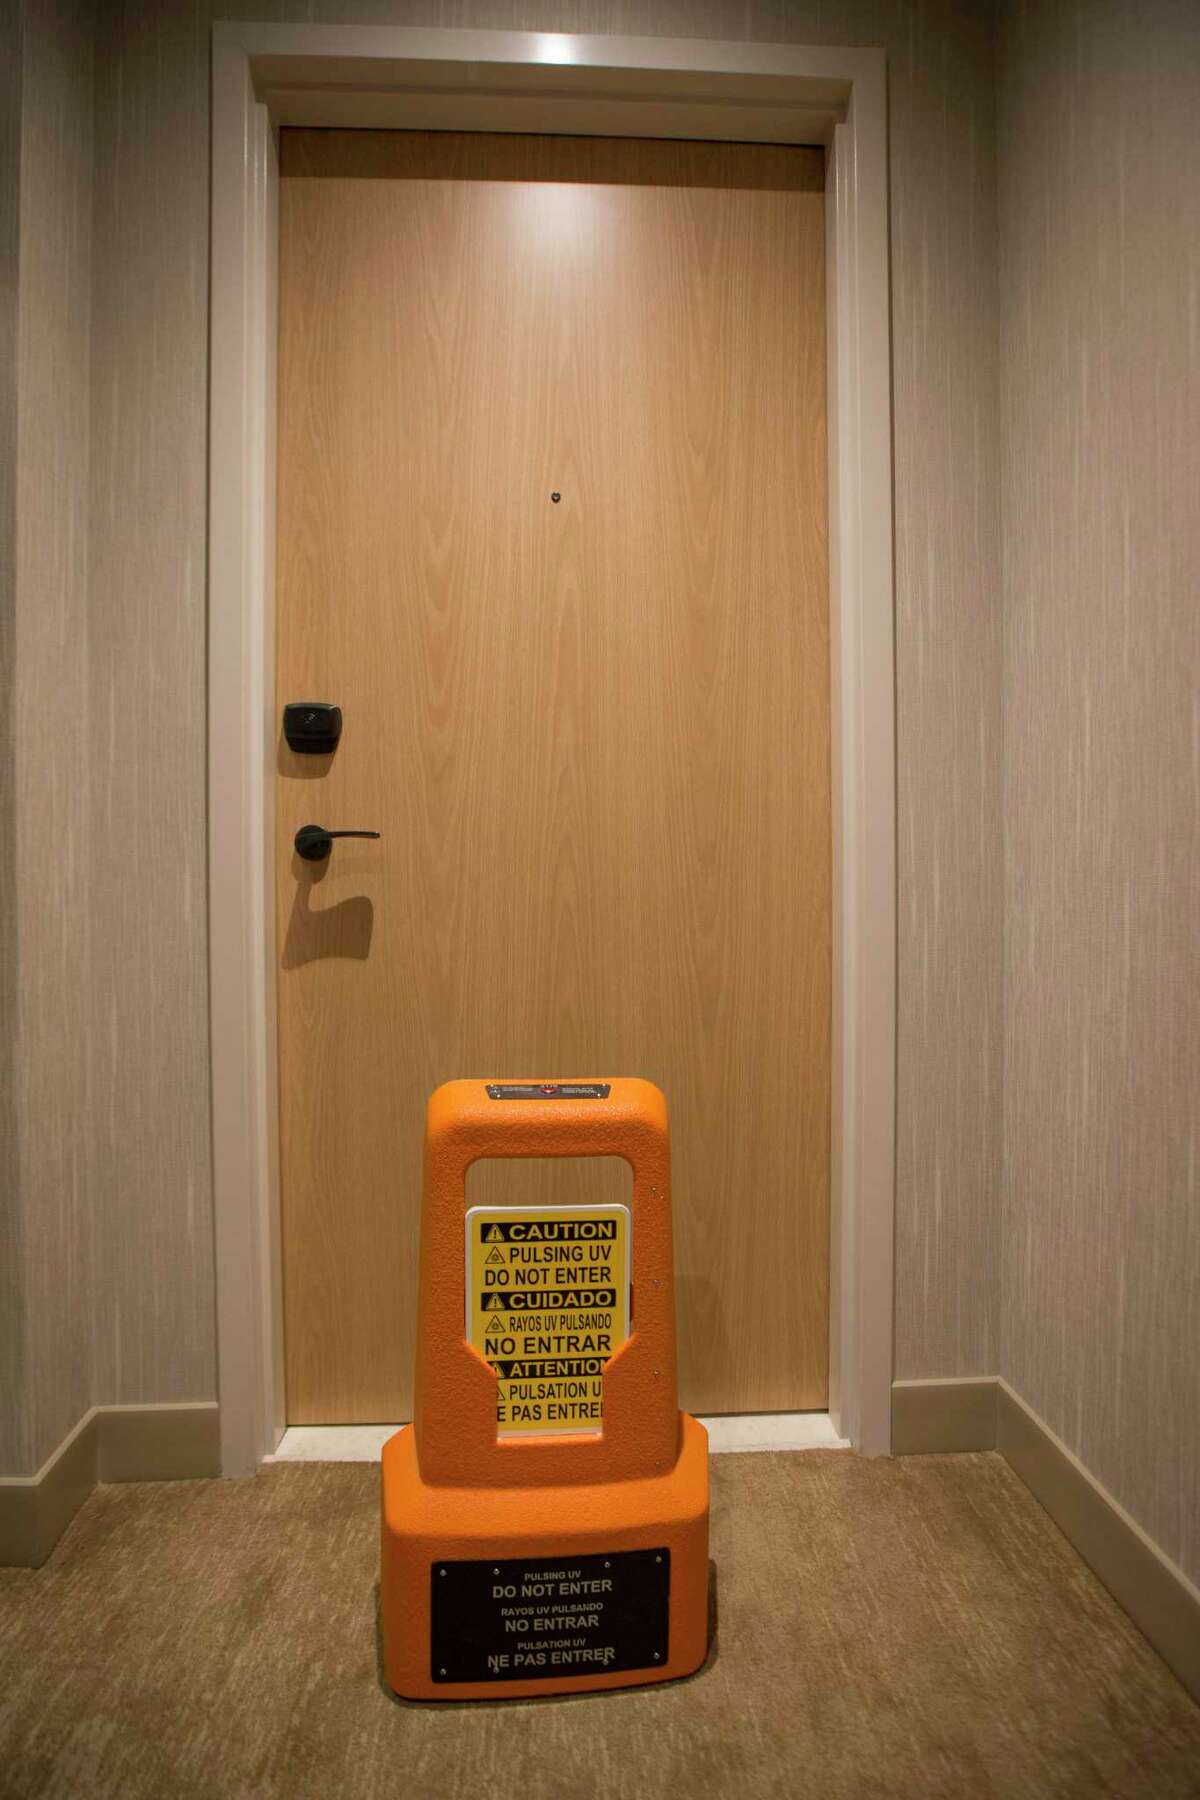 The Westin Houston Medical Center uses robots from a San Antonio-based firm to sanitize and disinfect guestrooms.